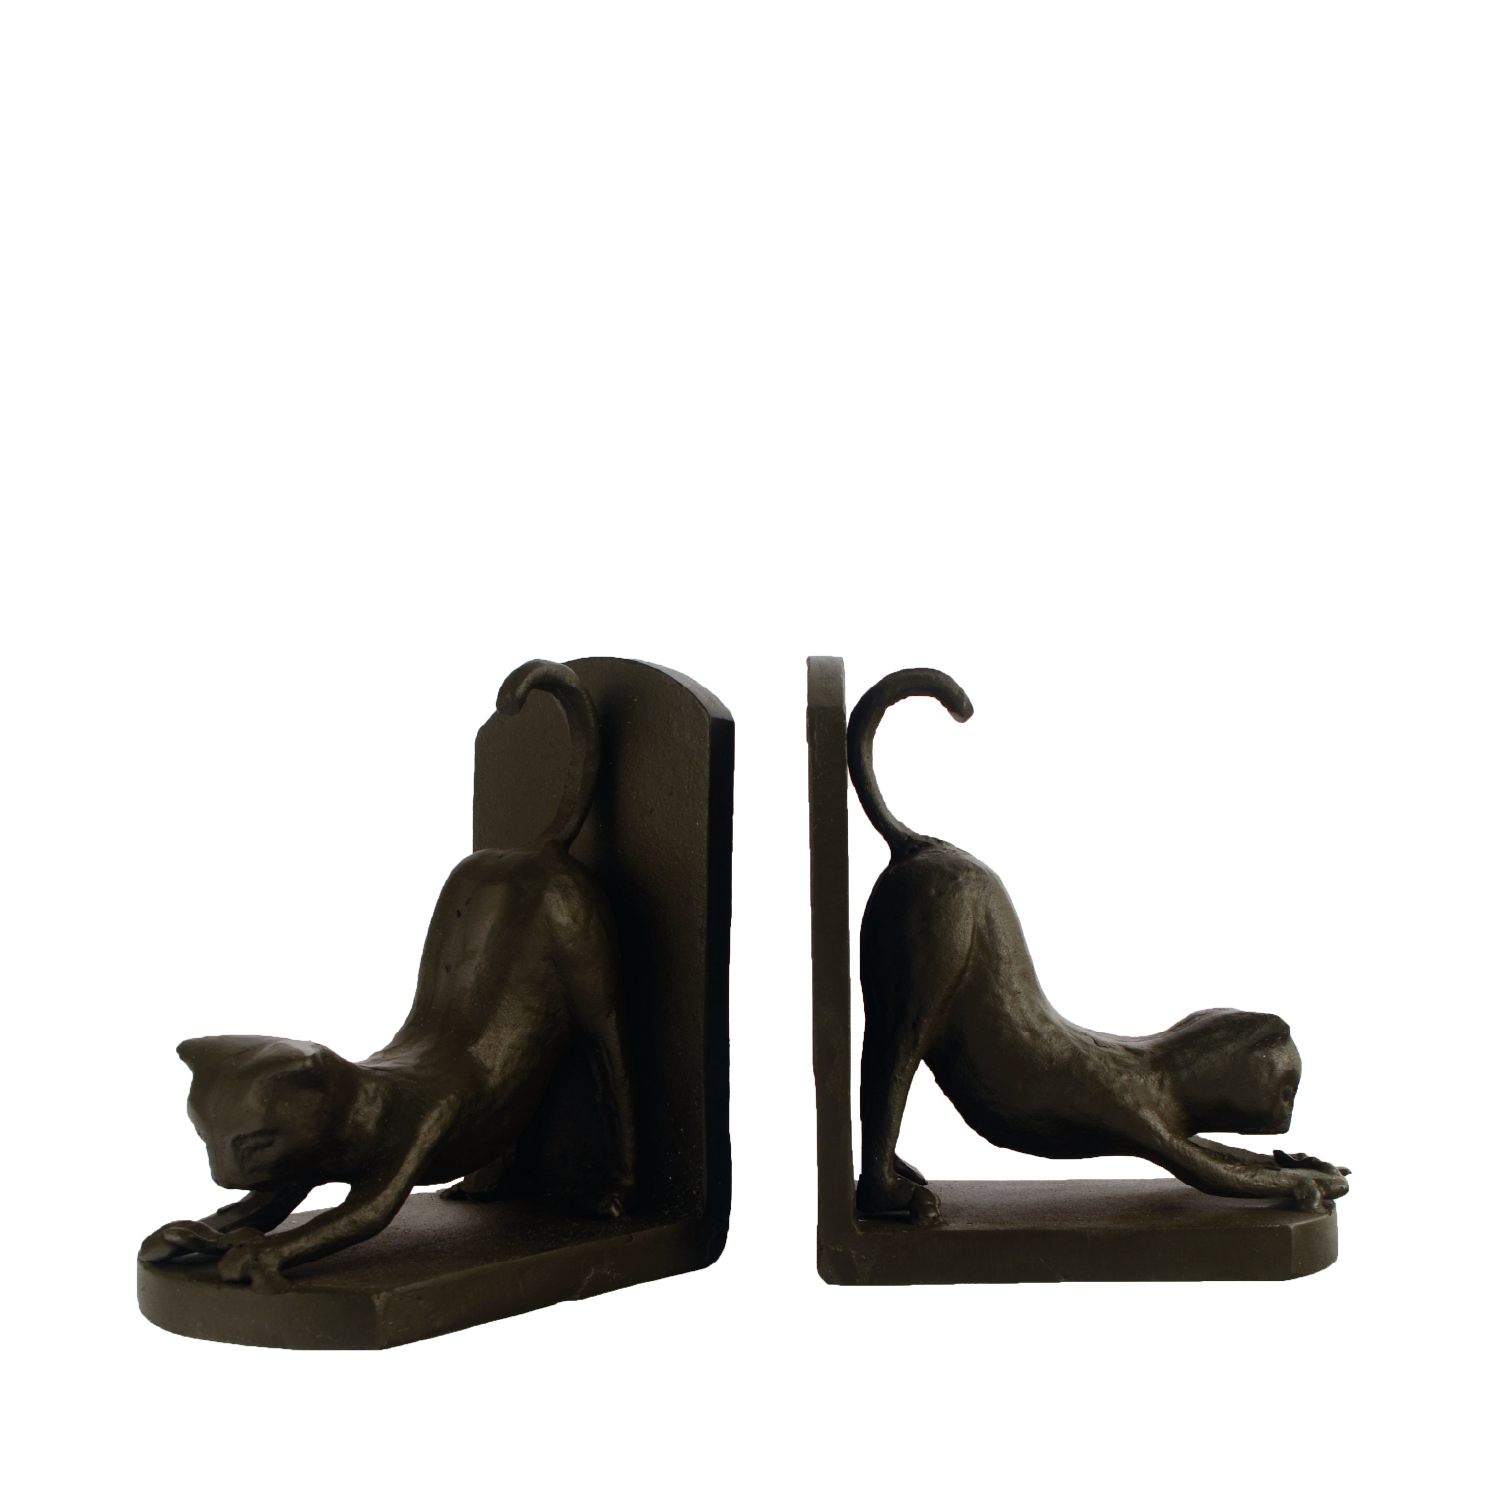 Elur Cat Iron Book Ends 13cm in Mocha Brown - Ruby's Garden Boutique